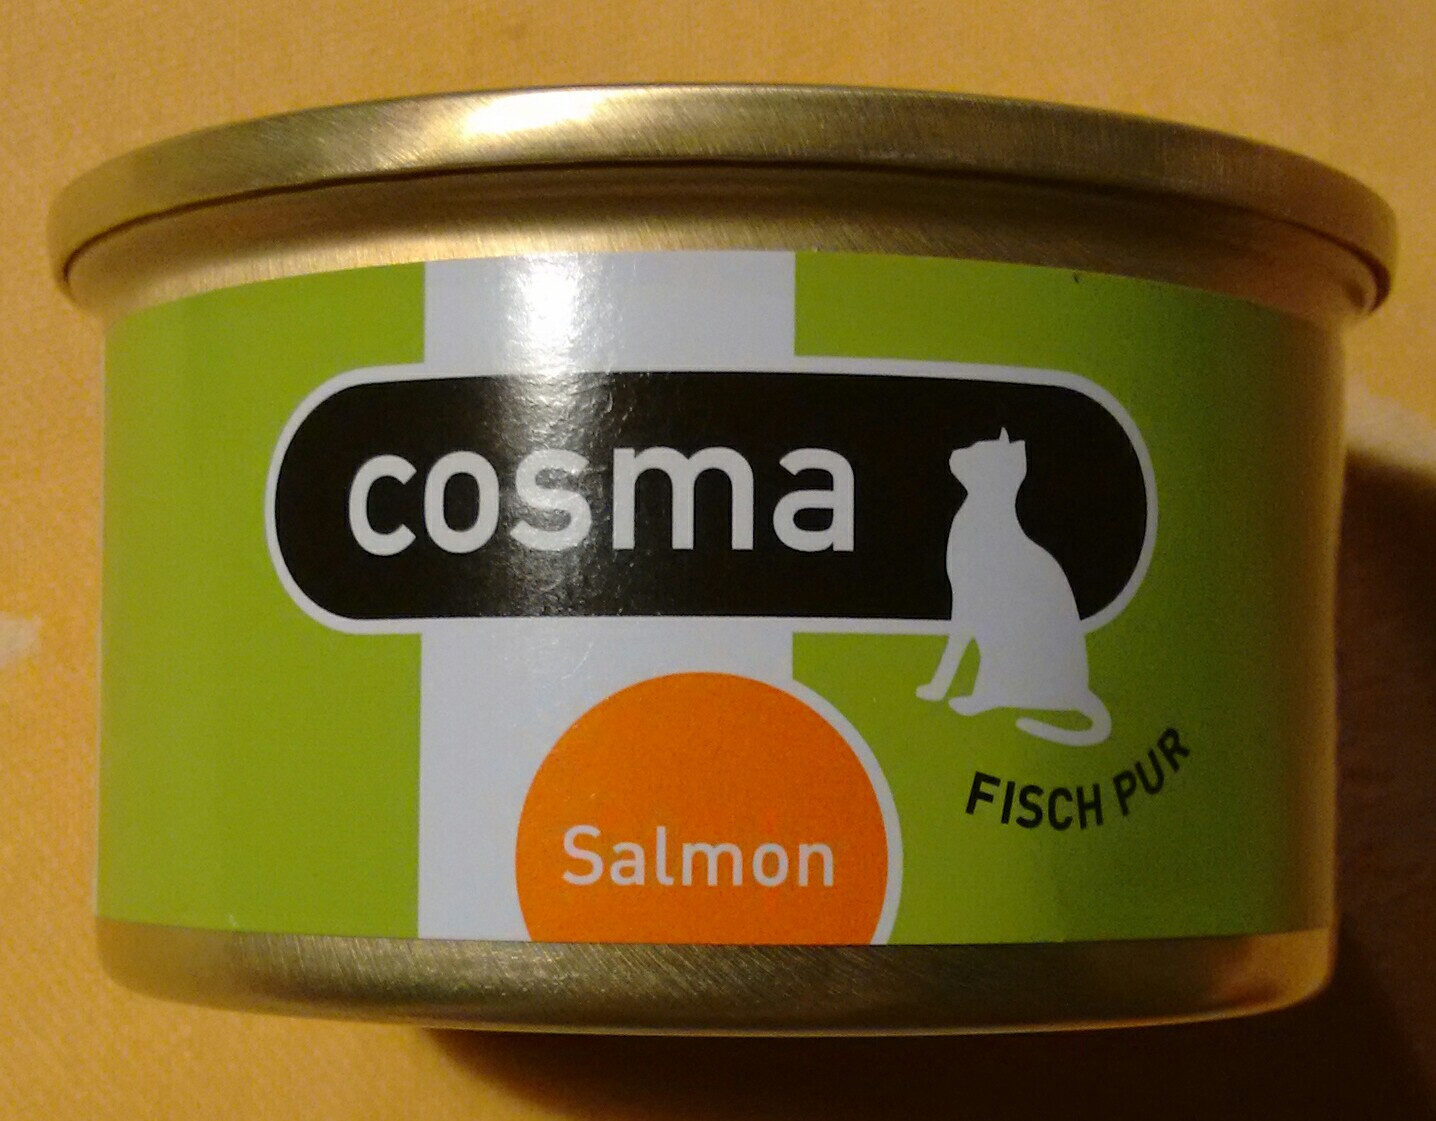 Cosma Salmon Fish pur - Product